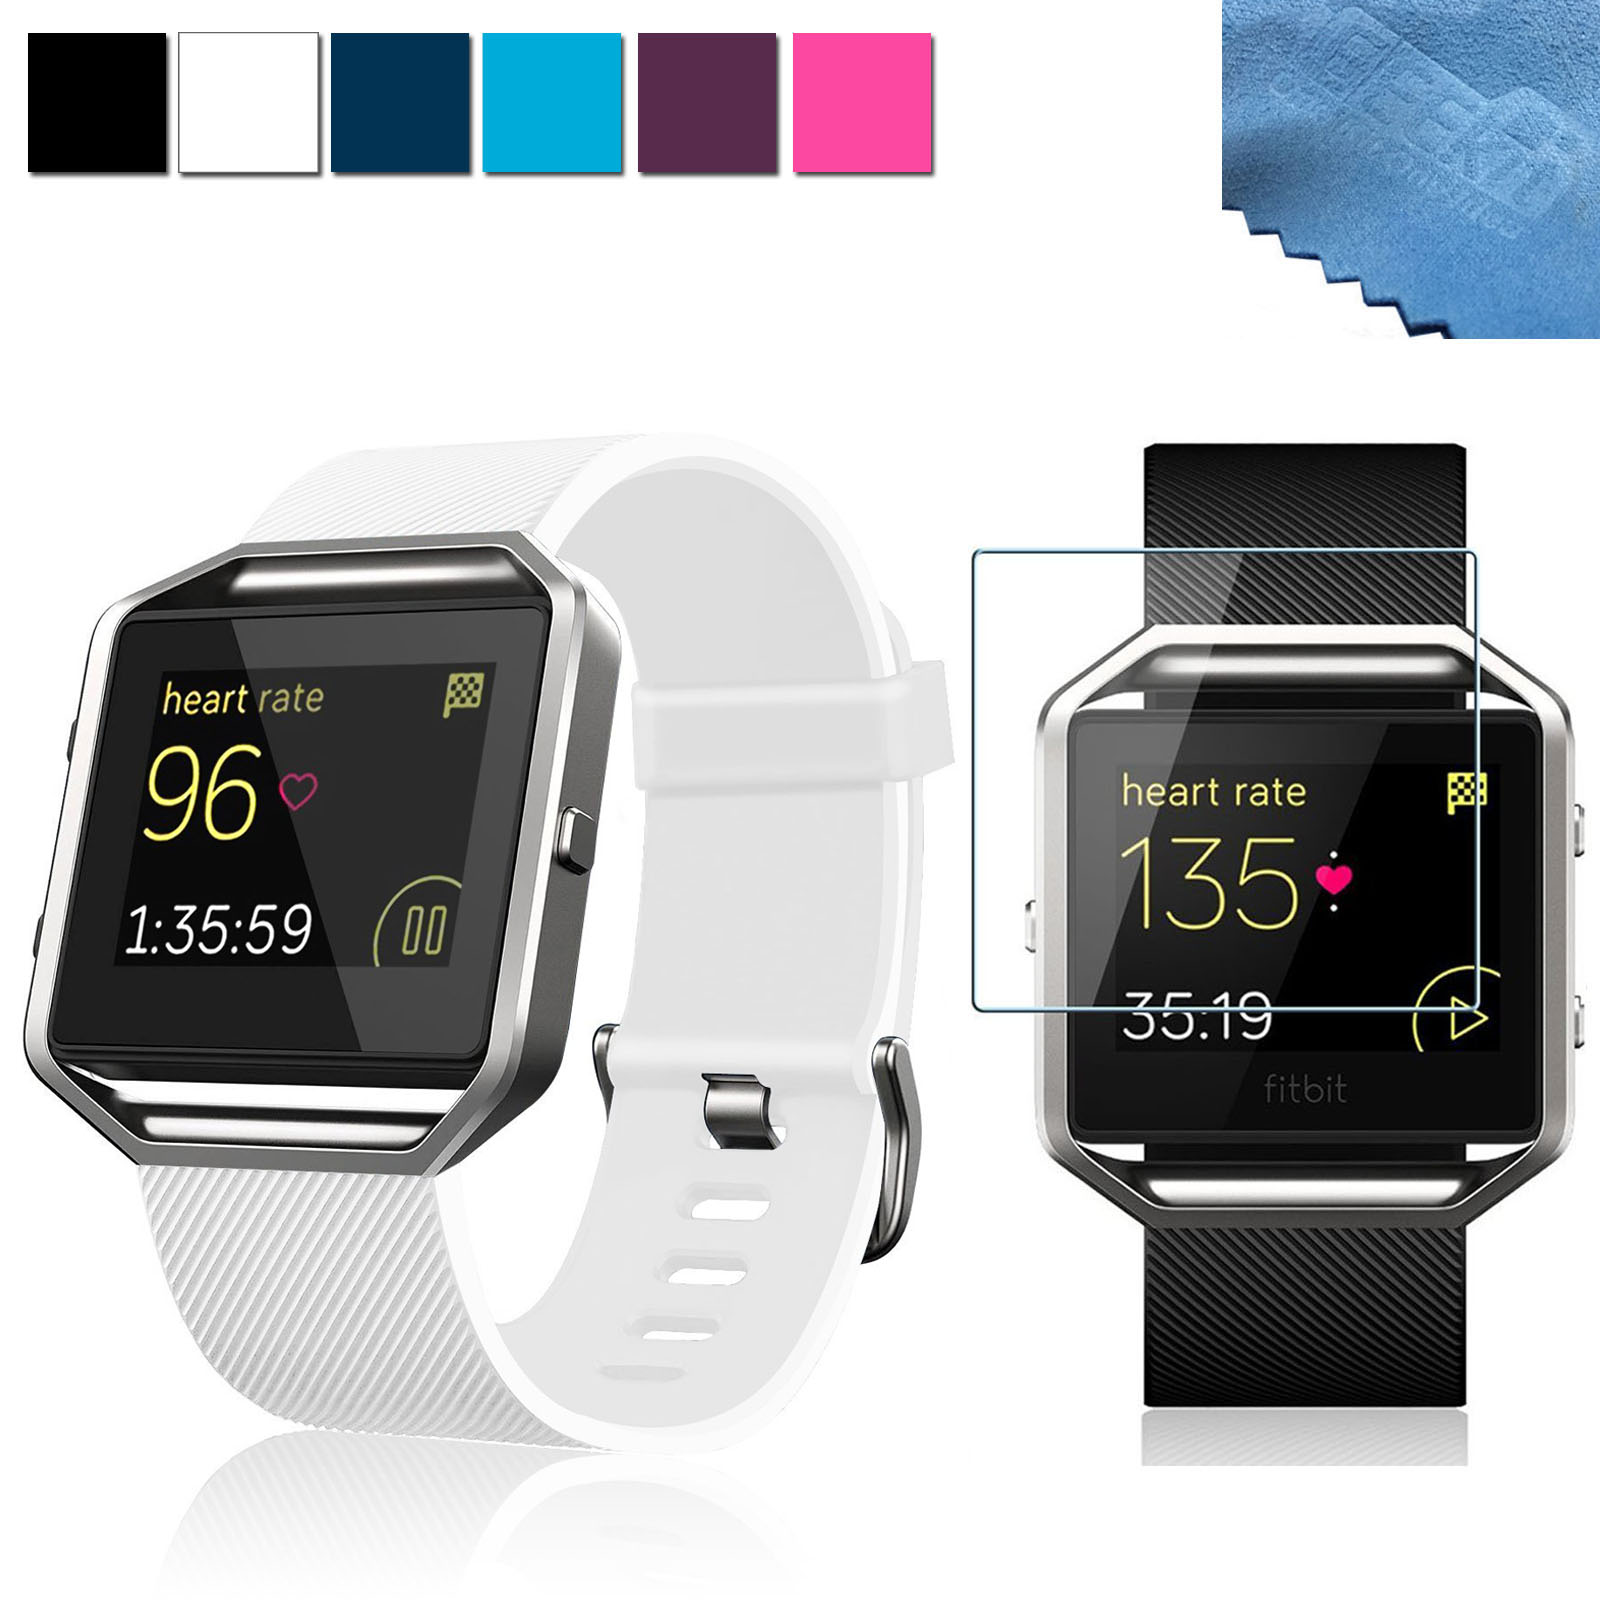 EEKit 2in1 Kit for Fitbit Blaze Smart Watch, Silicone Replacement Wrist Watch Band Strap+Tempered Glass Screen Protector